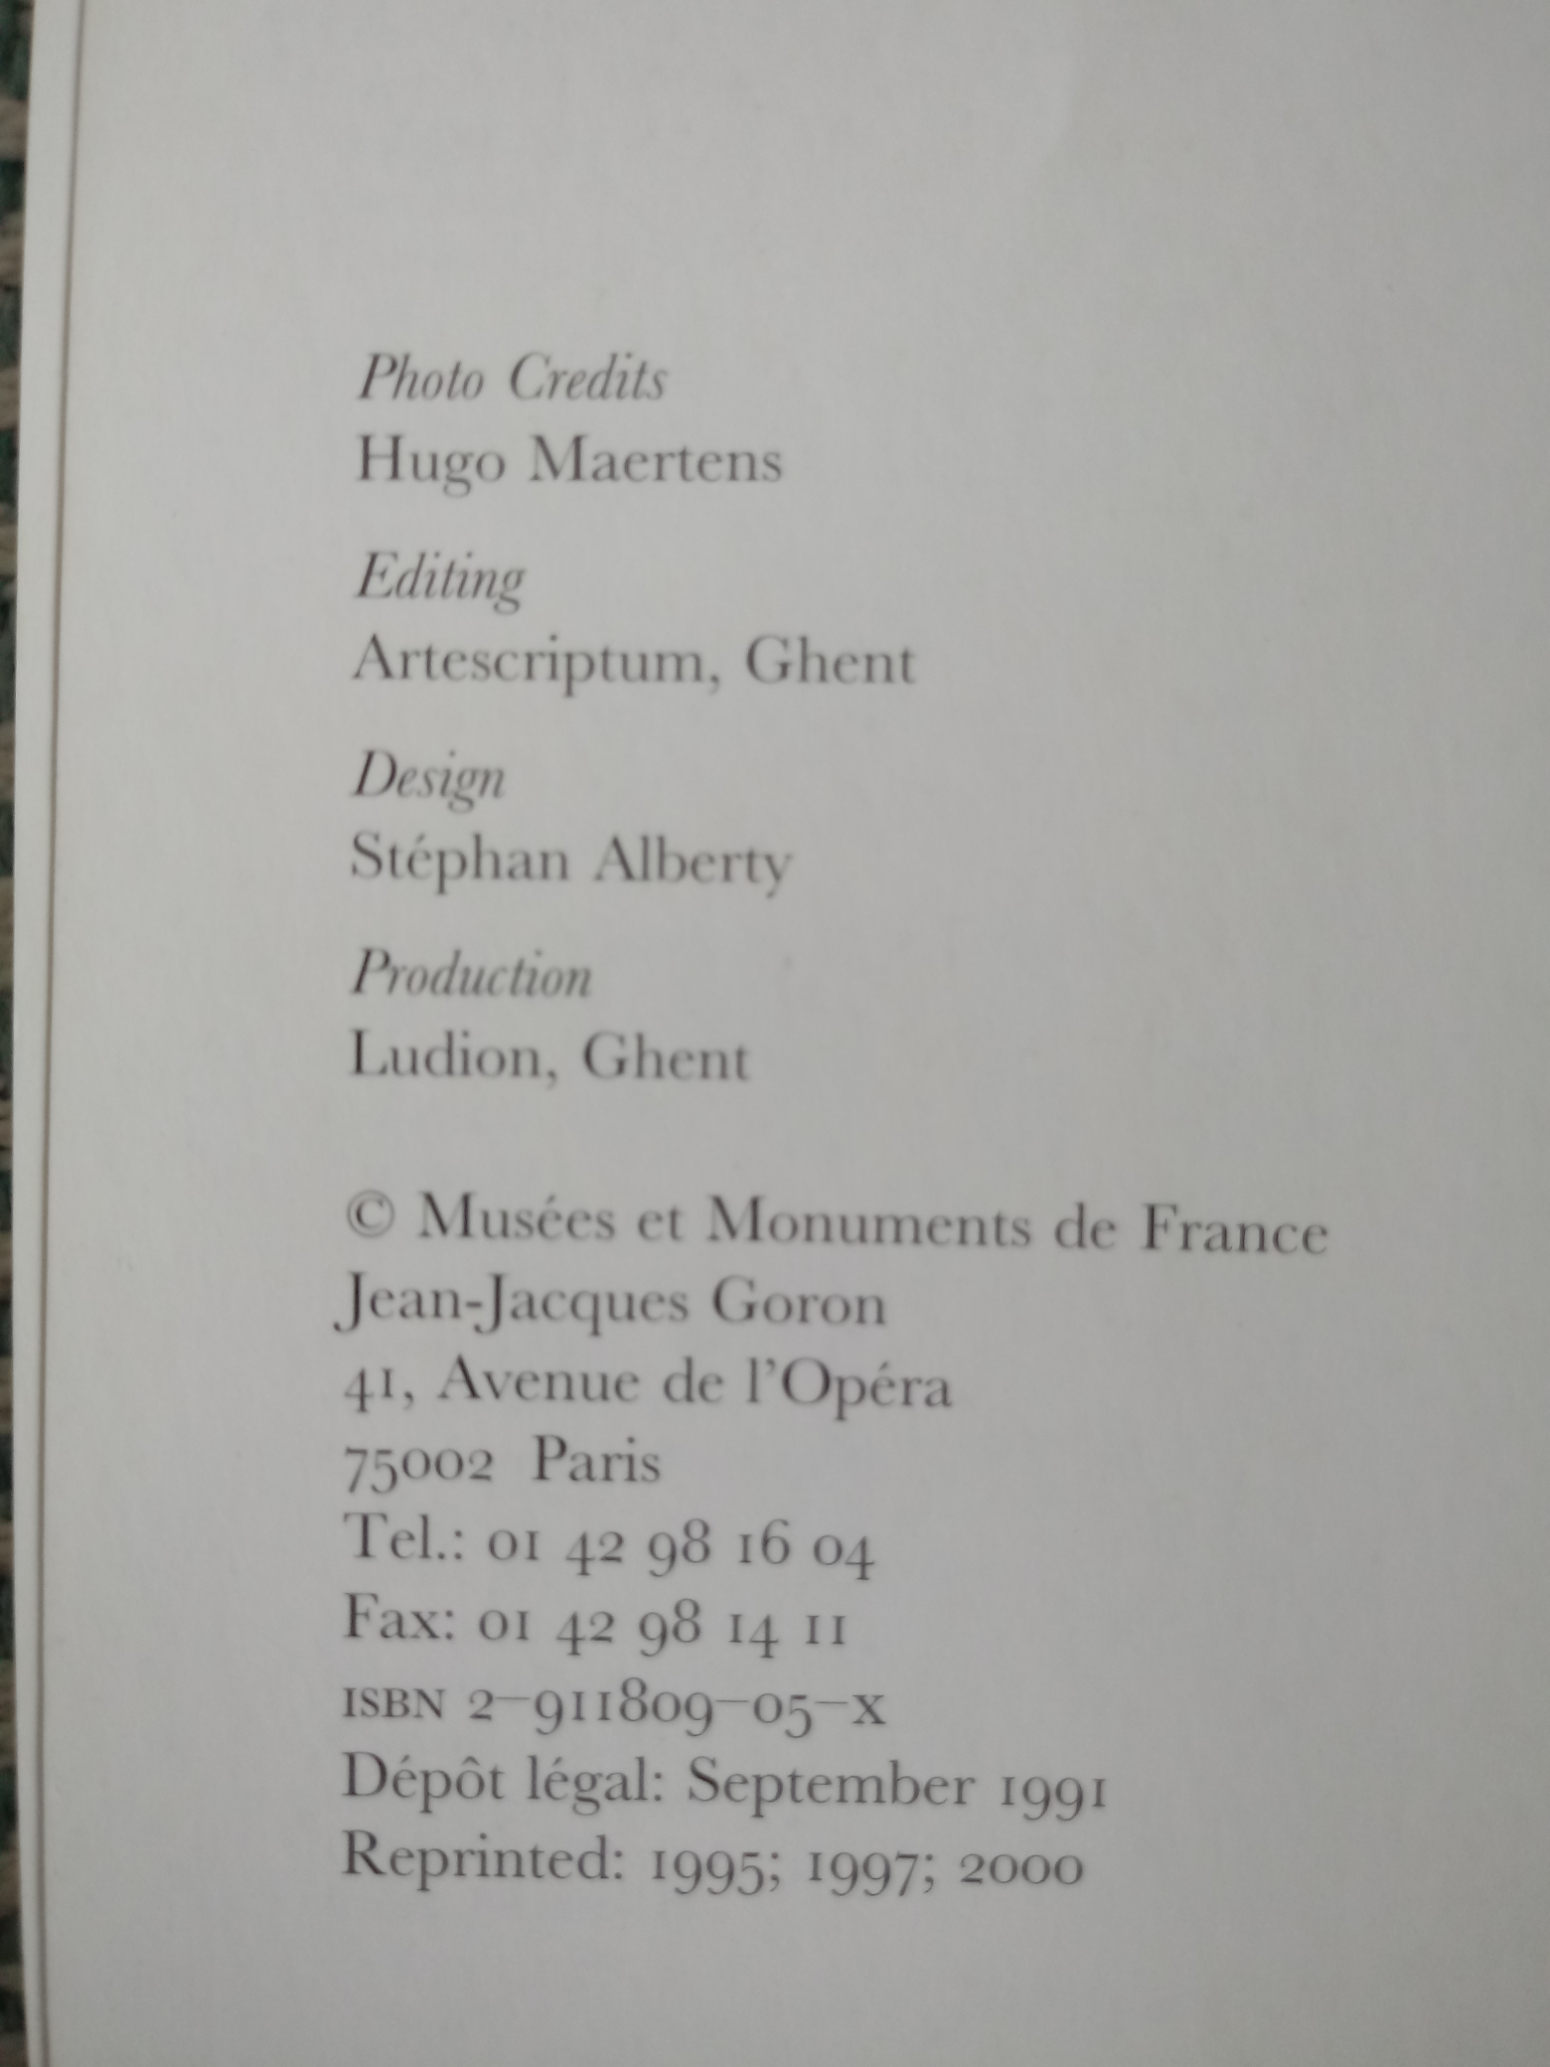 The Nissim de Camondo Museum Paris by Nadine gasc & Gerard Mabille softback book 125 pages Published - Image 2 of 2